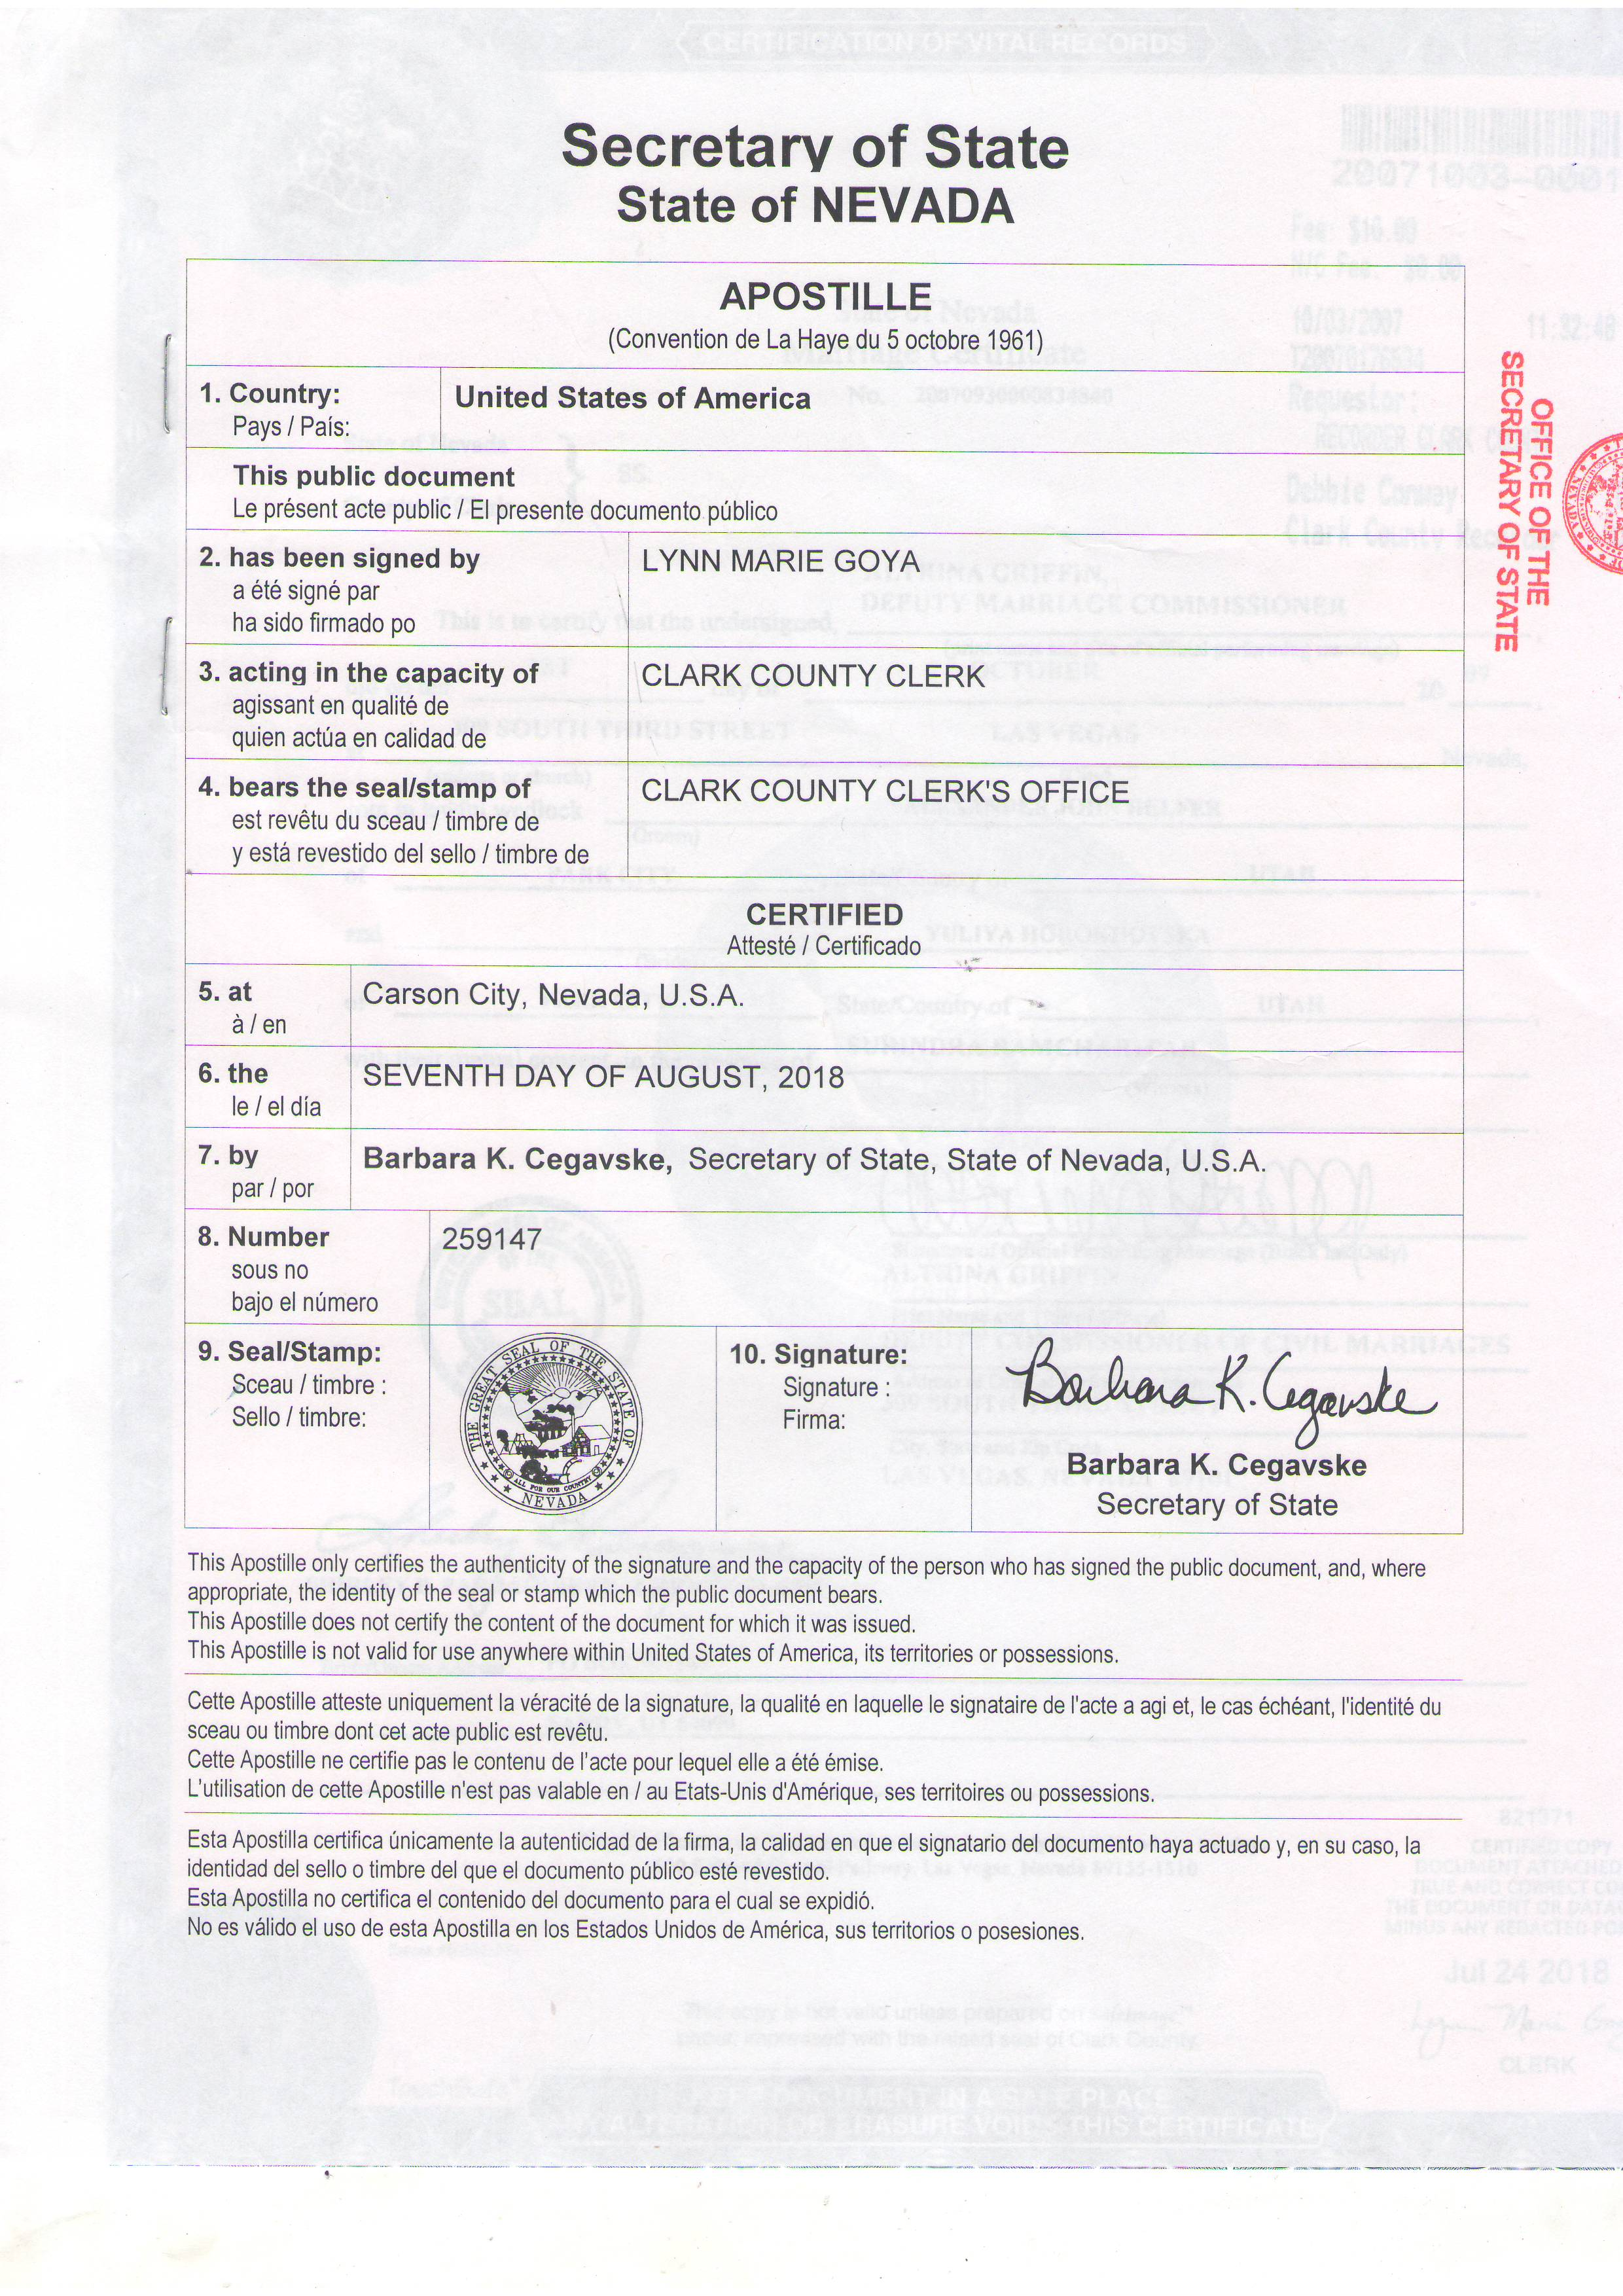 U S Apostille Sertified Copies Of The U S Documents 38 099 337 3951 Kyiv Legalization Center